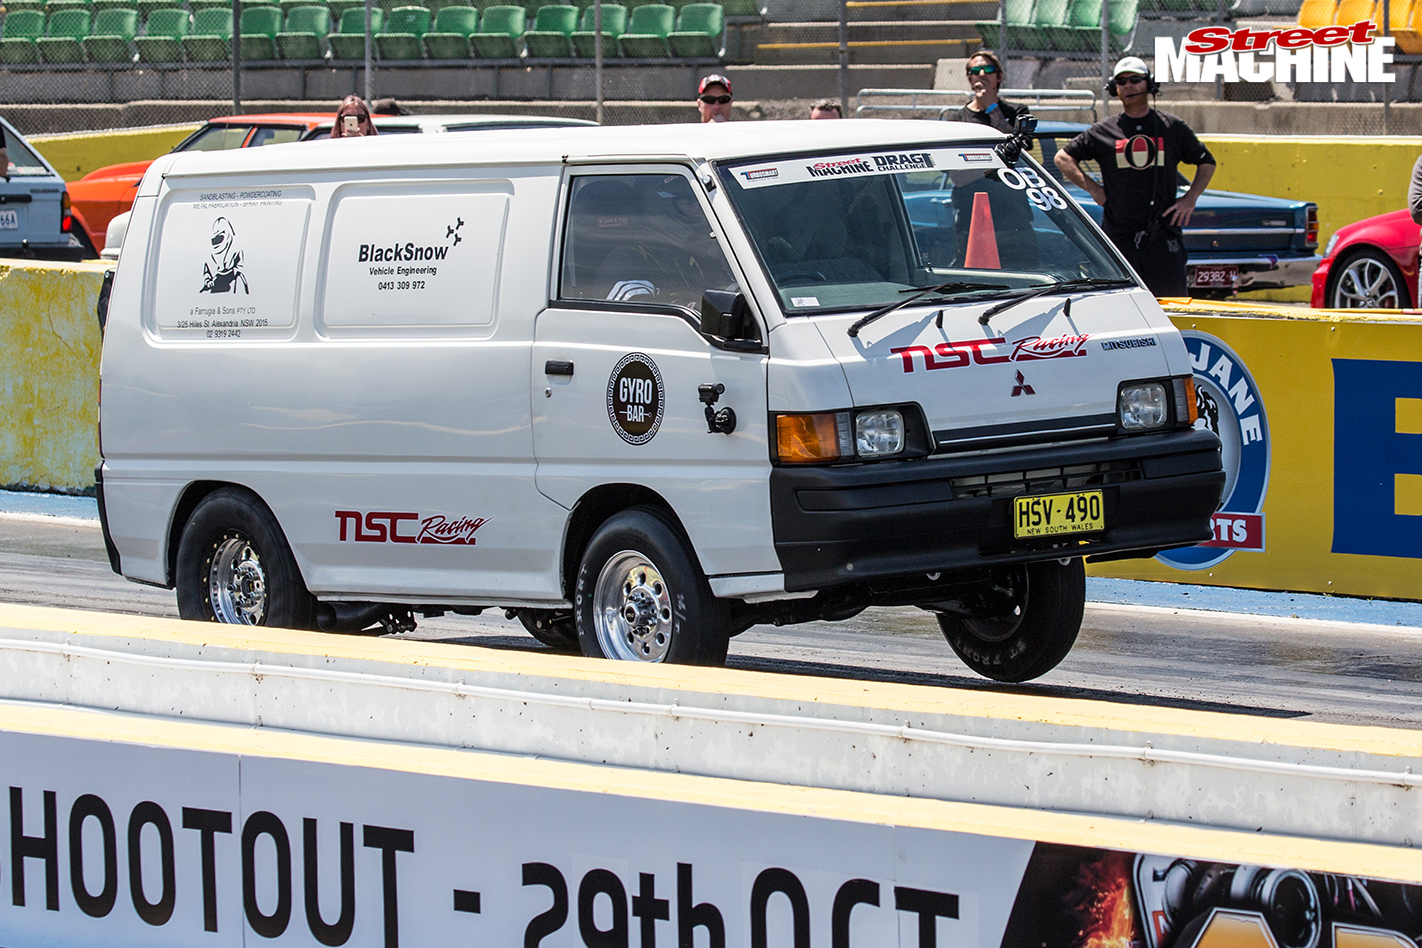 TURBO-LS-FORD-CAPRI-AND-TWIN-TURBO-LS-MITSUBISHI-EXPRESS-VAN-AT-DRAG-CHALLENGE-van